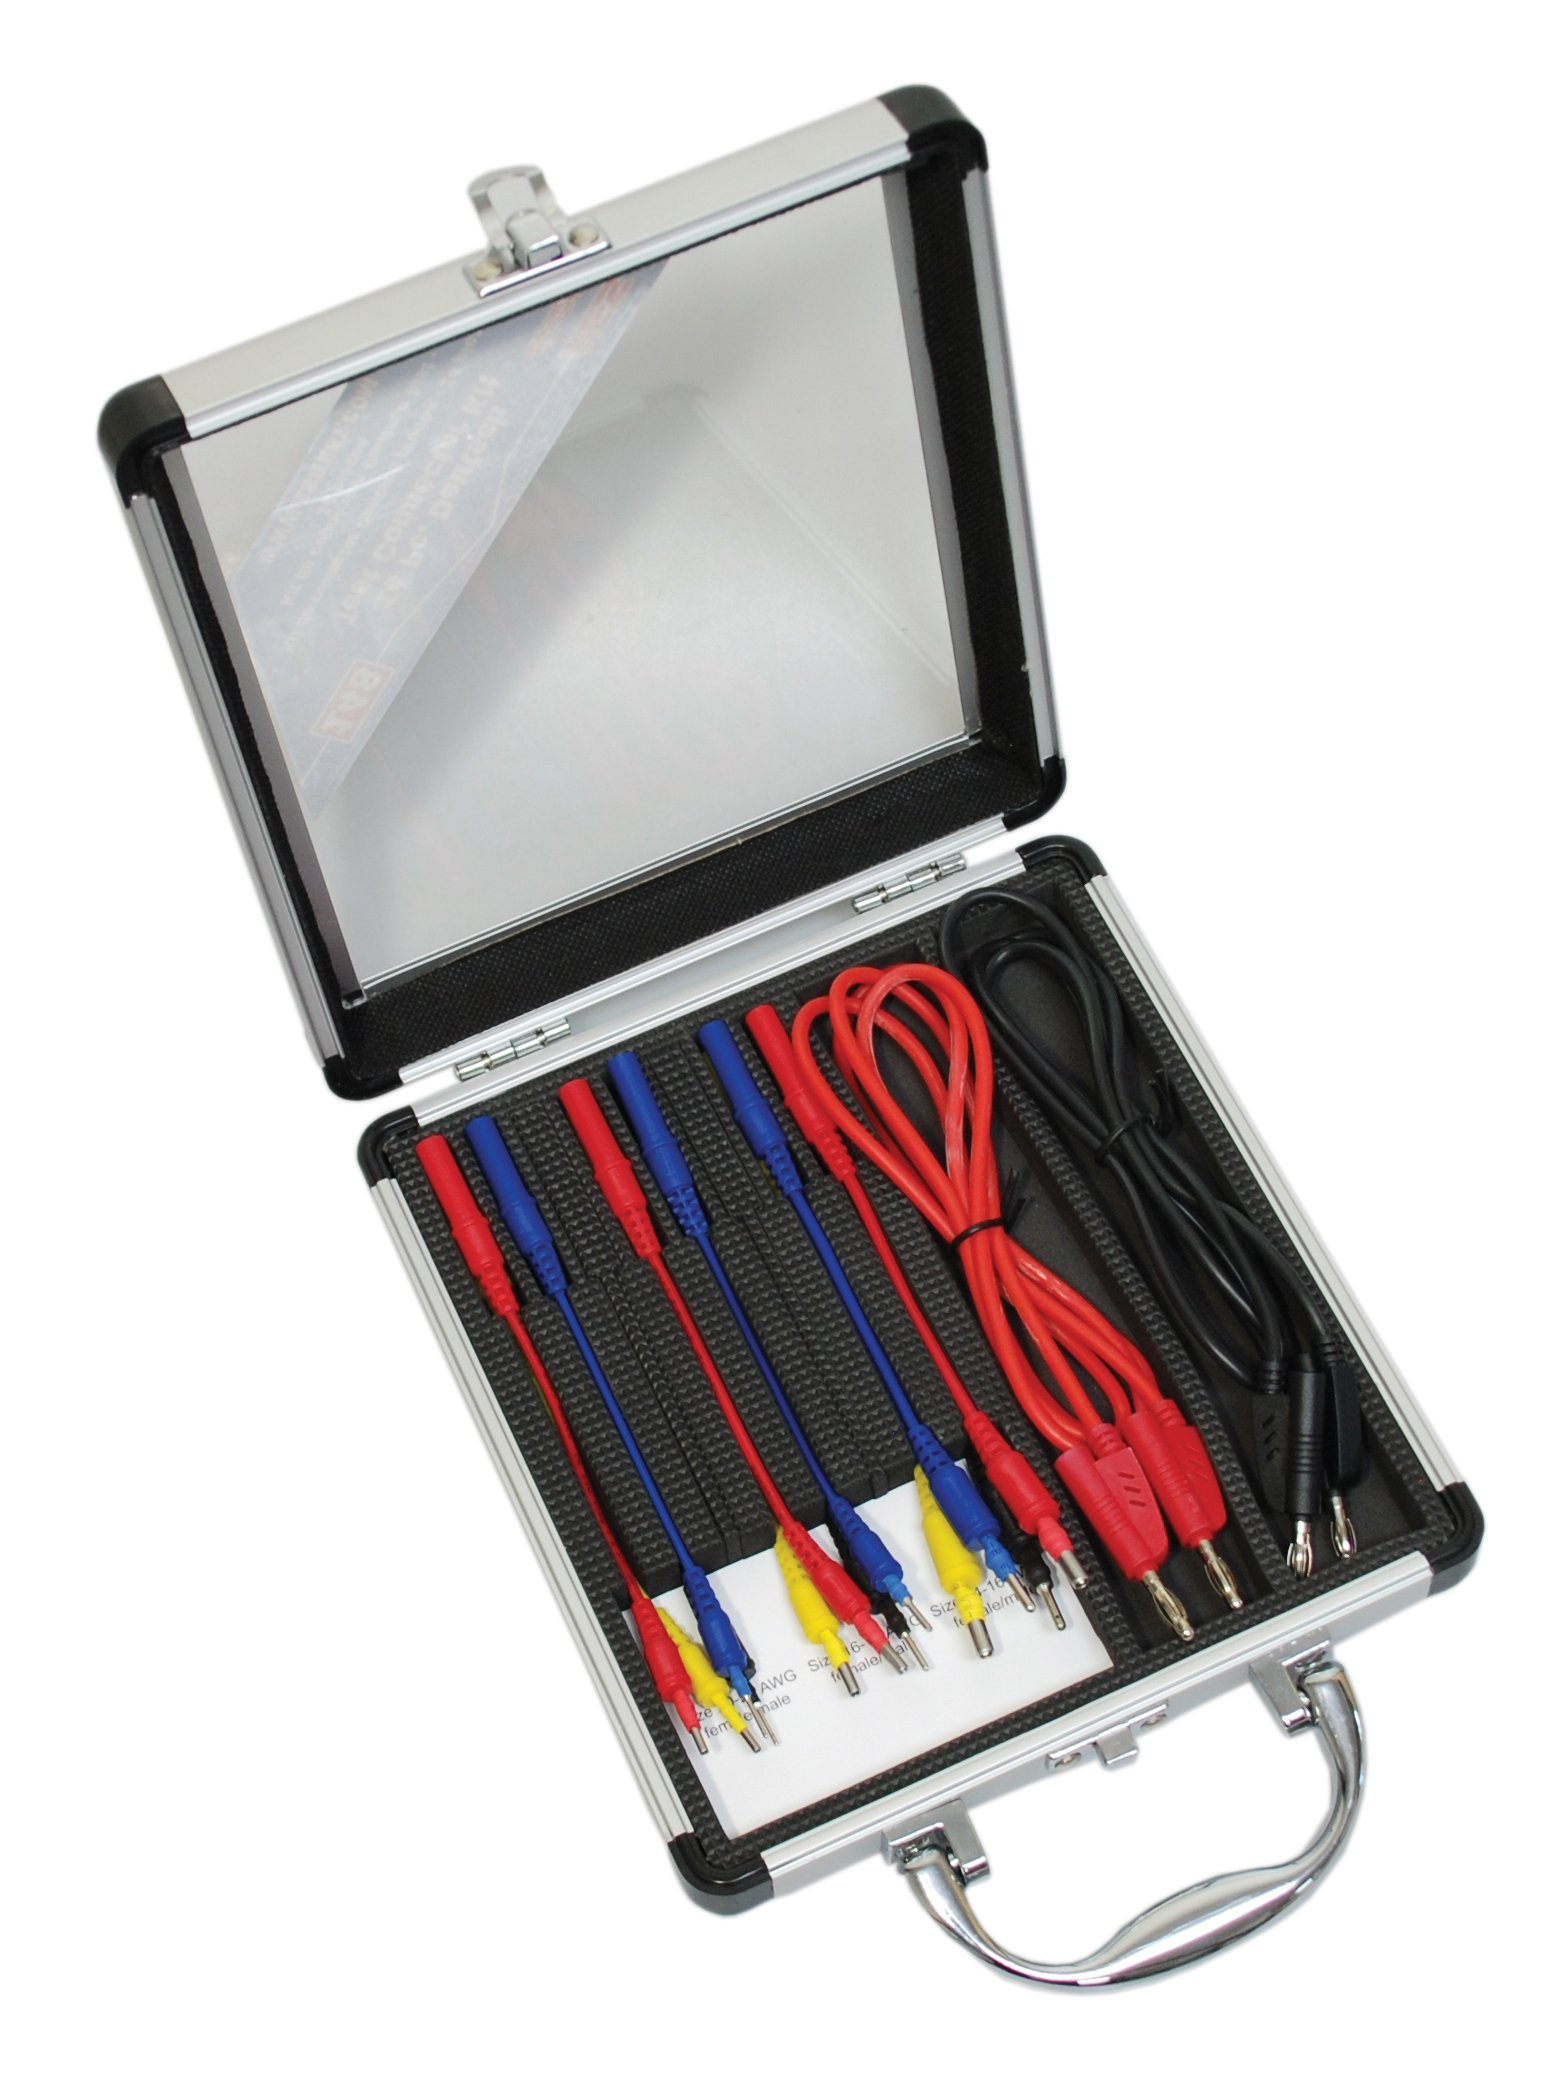 Electronic Specialties 148 14 Piece Deutsch Test Connector Kit